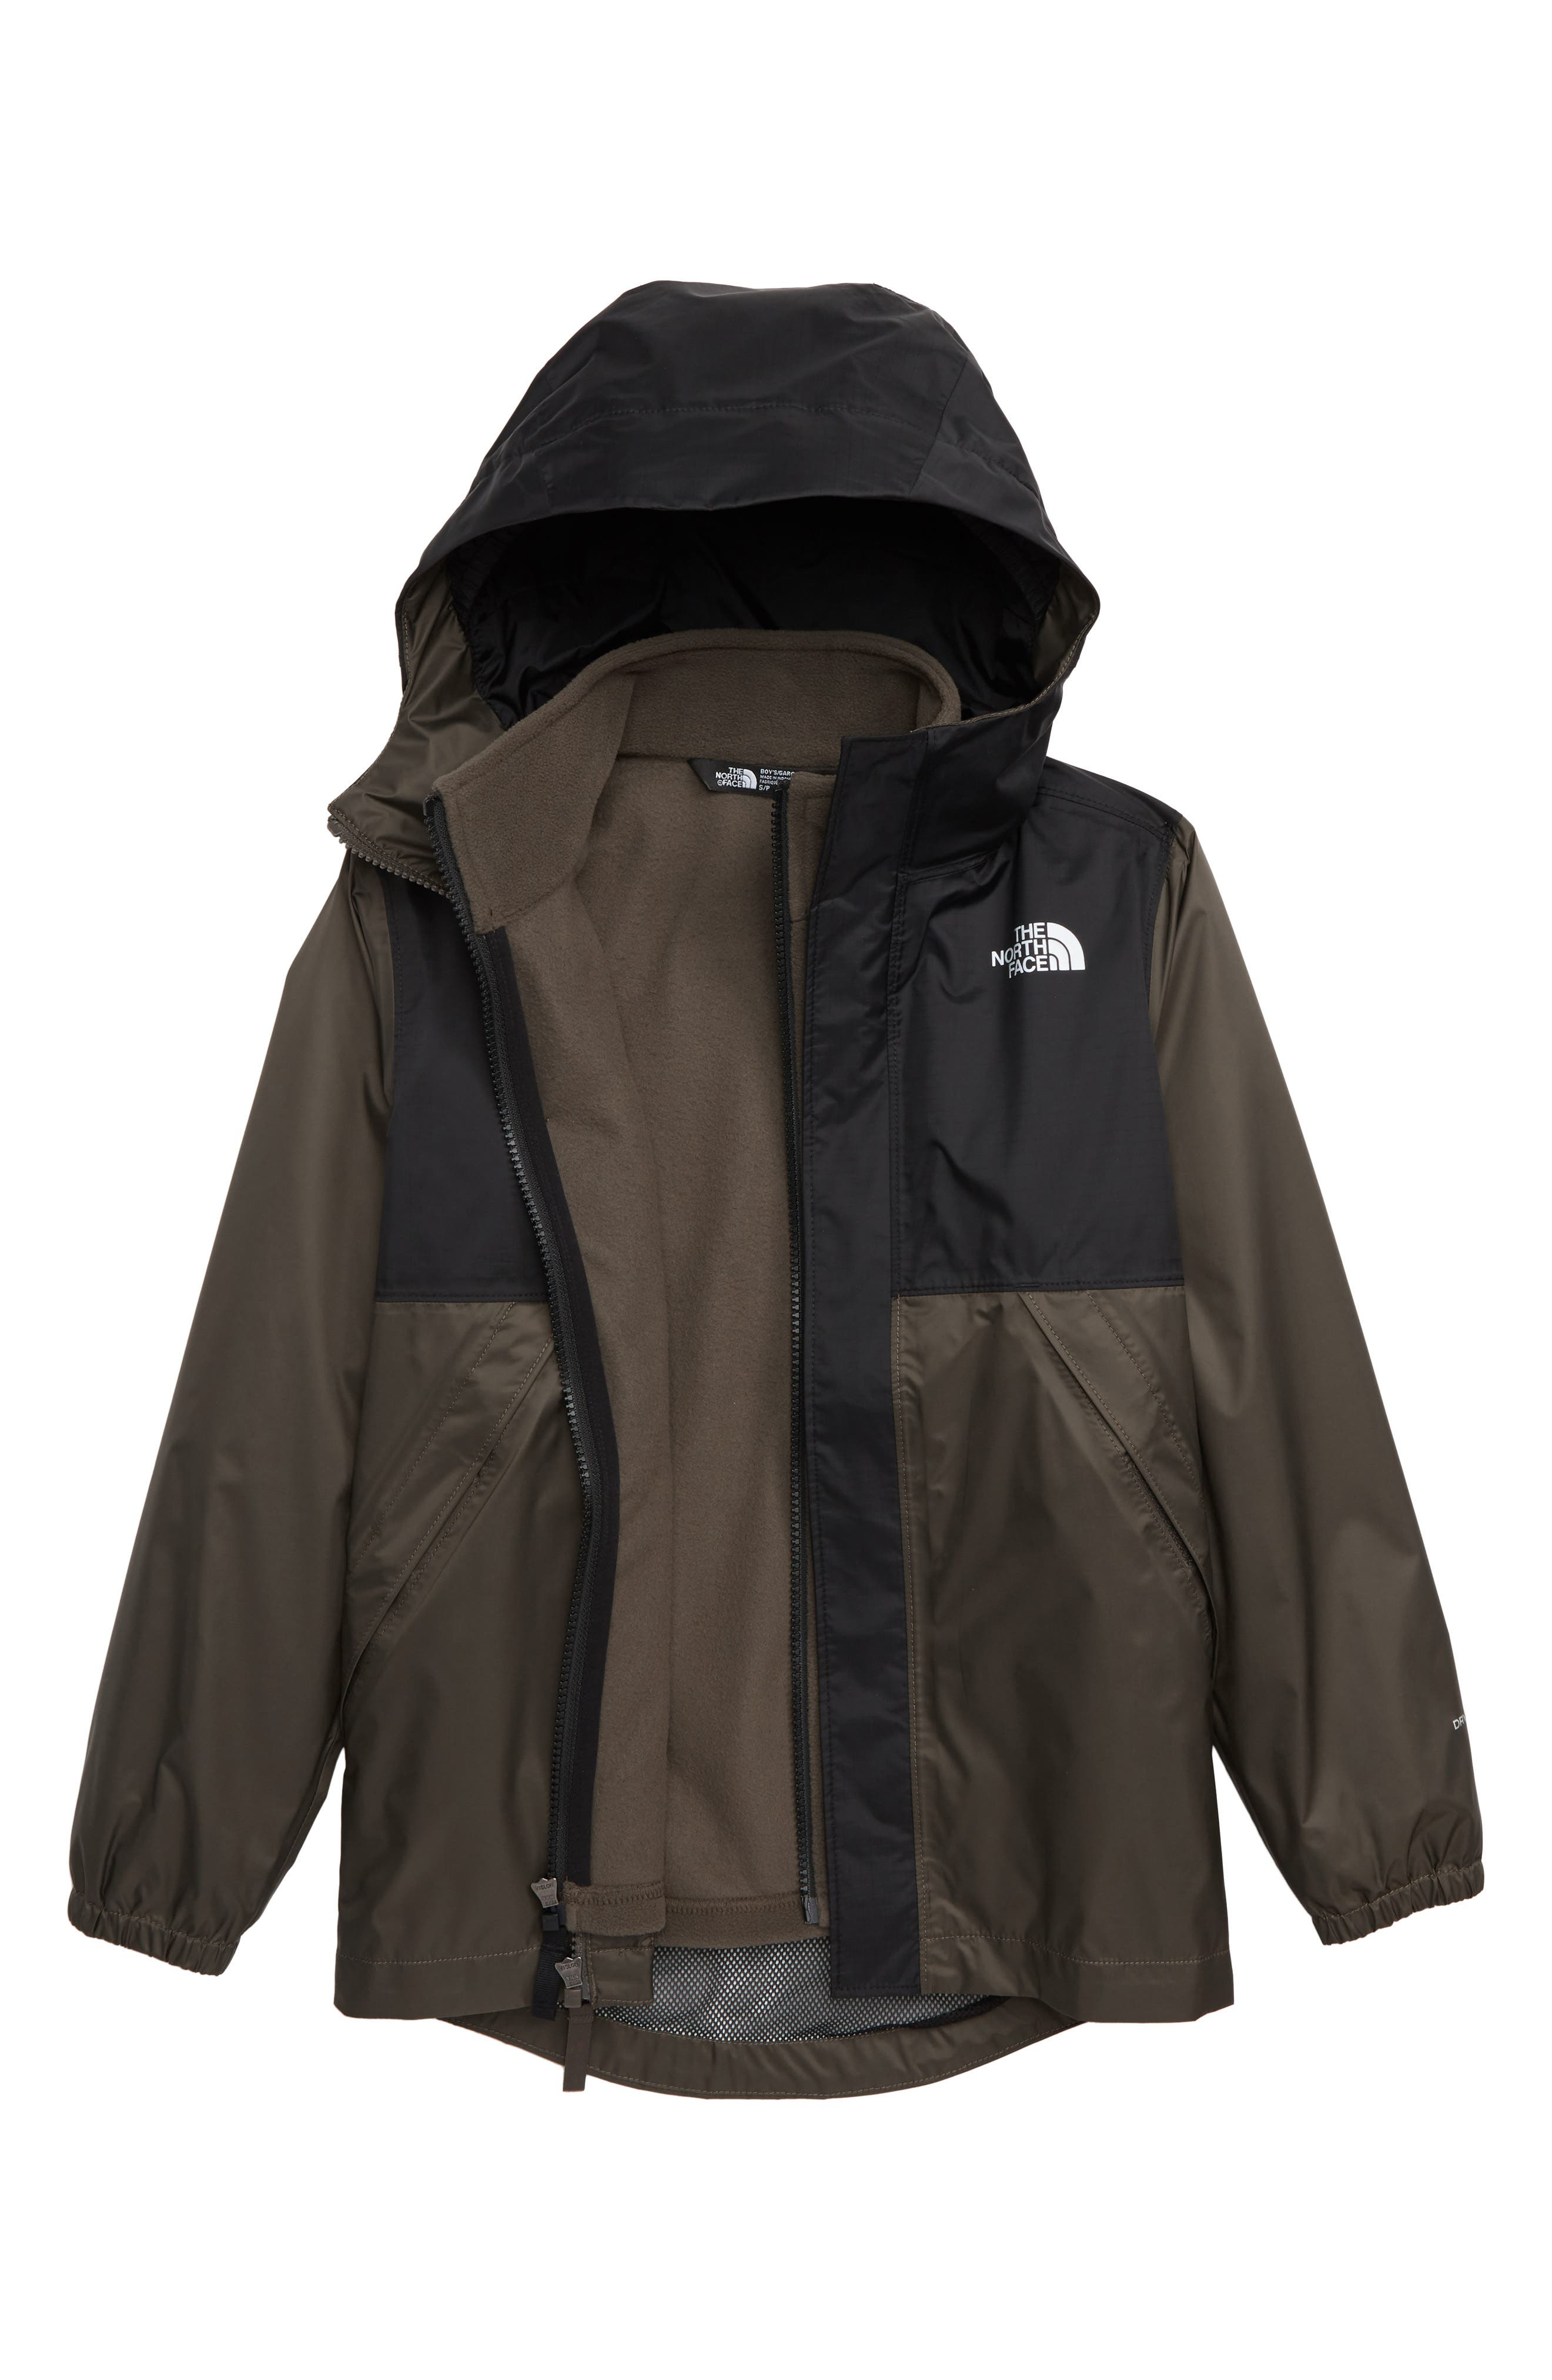 THE NORTH FACE, Stormy Rain Triclimate<sup>®</sup> Waterproof 3-in-1 Jacket, Main thumbnail 1, color, TAUPE GREEN